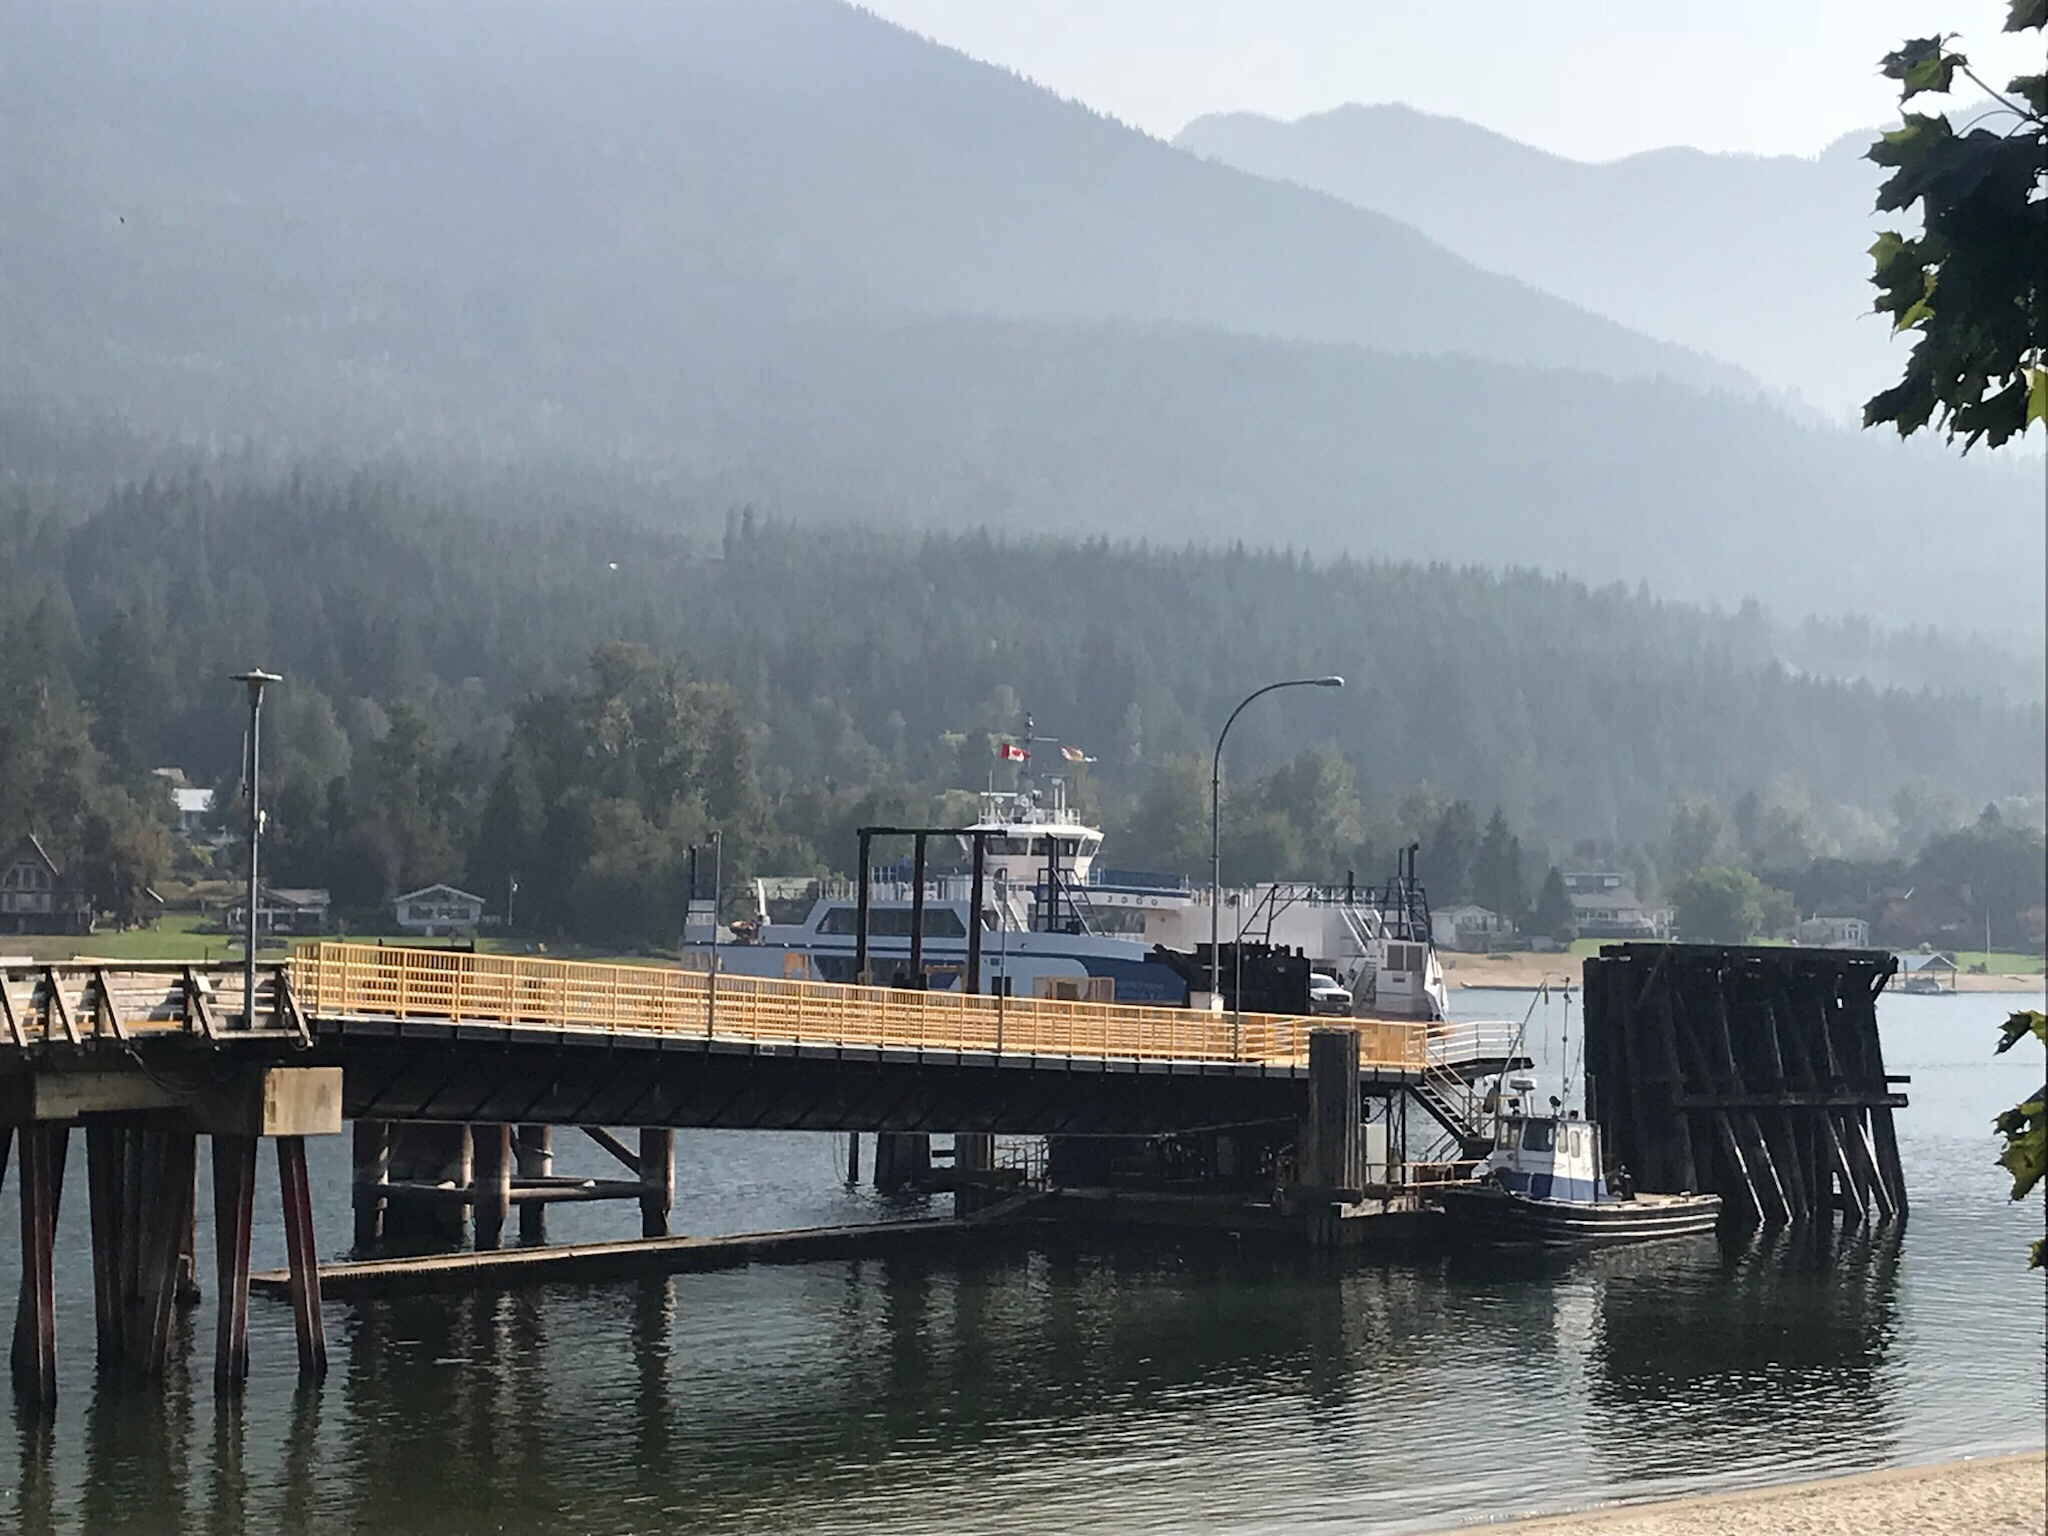 My ride is arriving to pick me up (along with a few others). This is the Osprey 2000, one of the two Balfour/Kootenay Ferries.